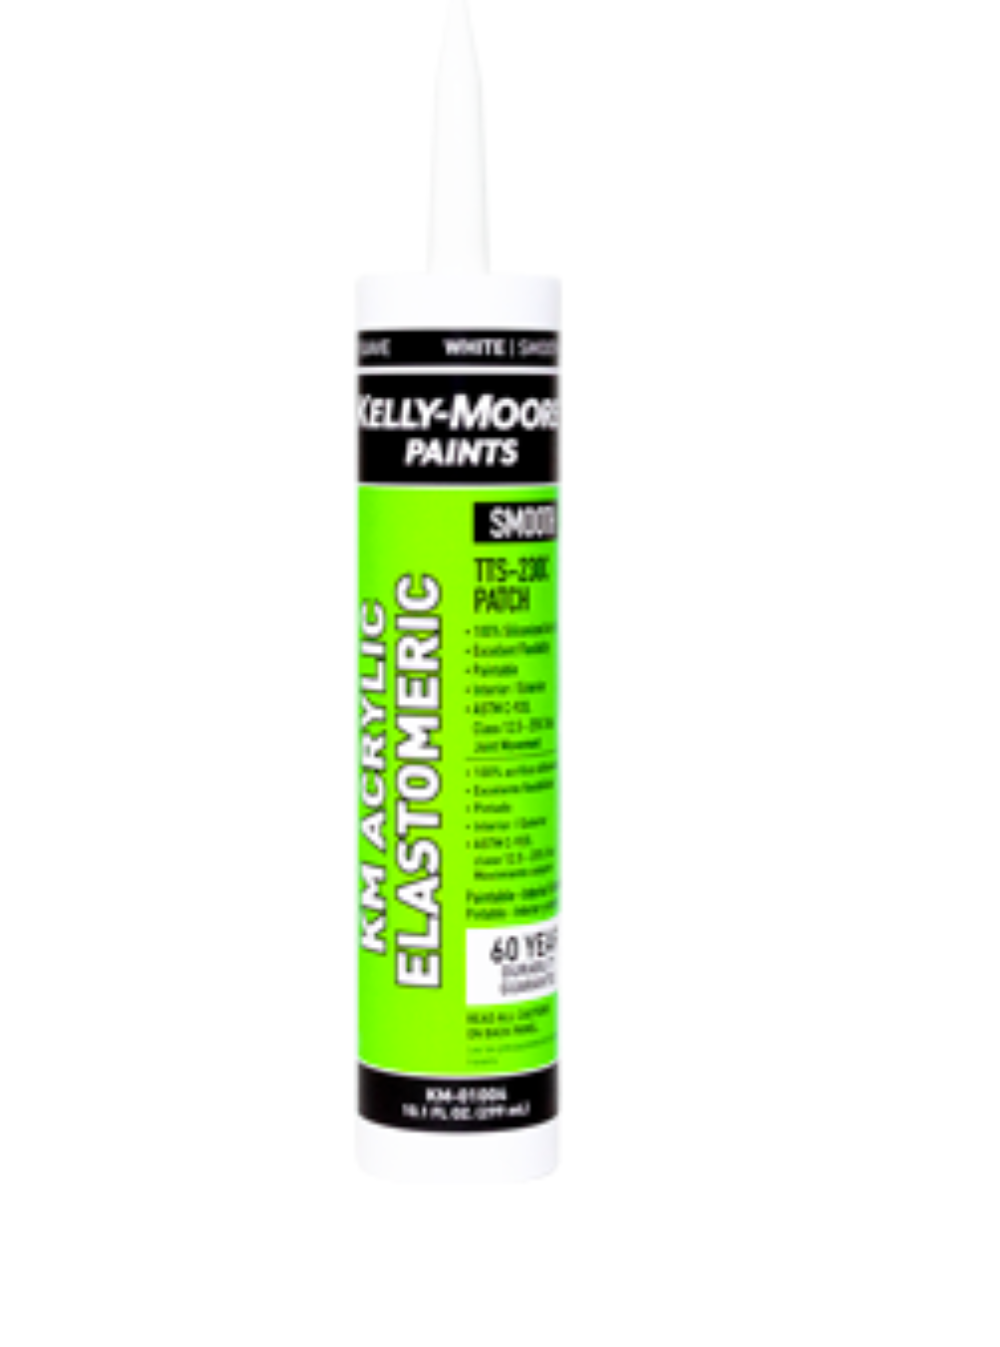 10.1oz White Smooth Acrylic Elastomeric Caulk, available at Kelly-Moore Paints for Contractors.